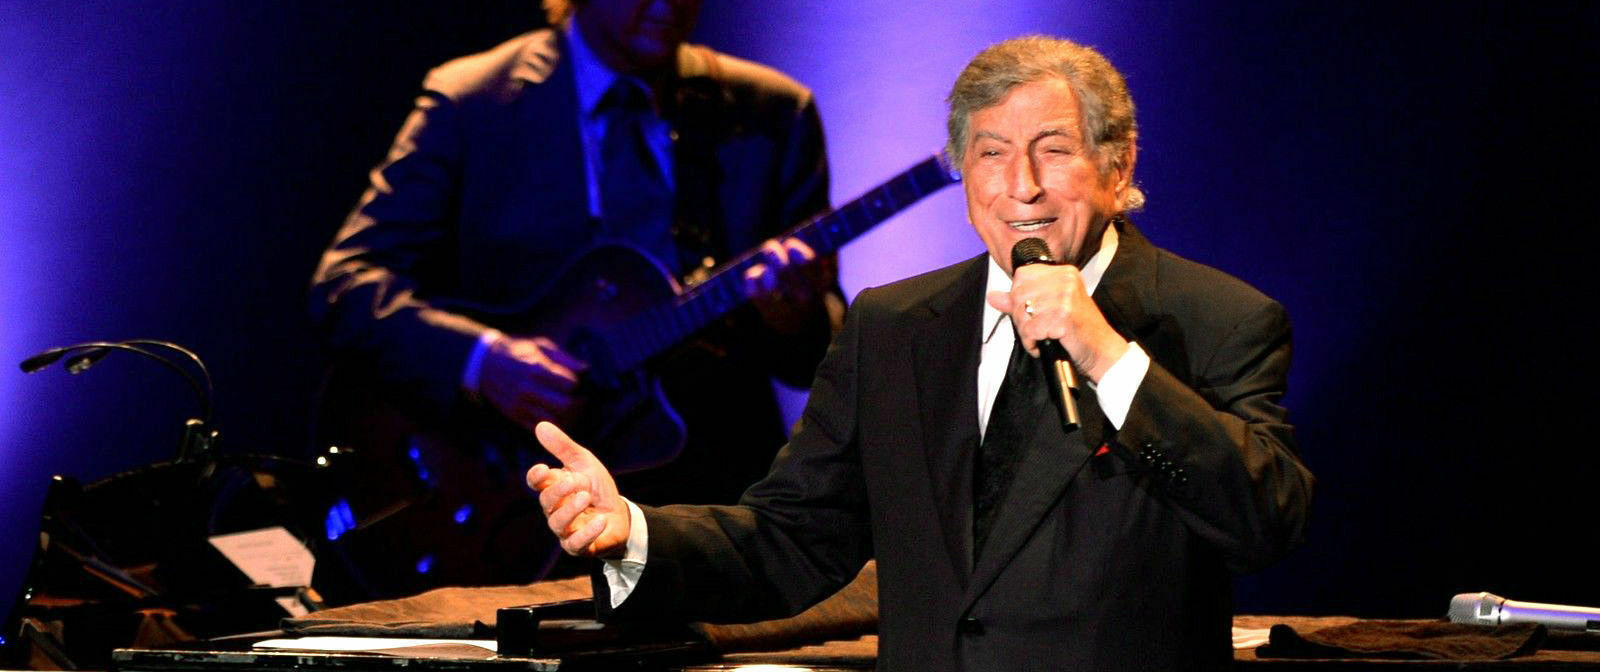 Tony Bennett Tickets (Rescheduled from May 11)